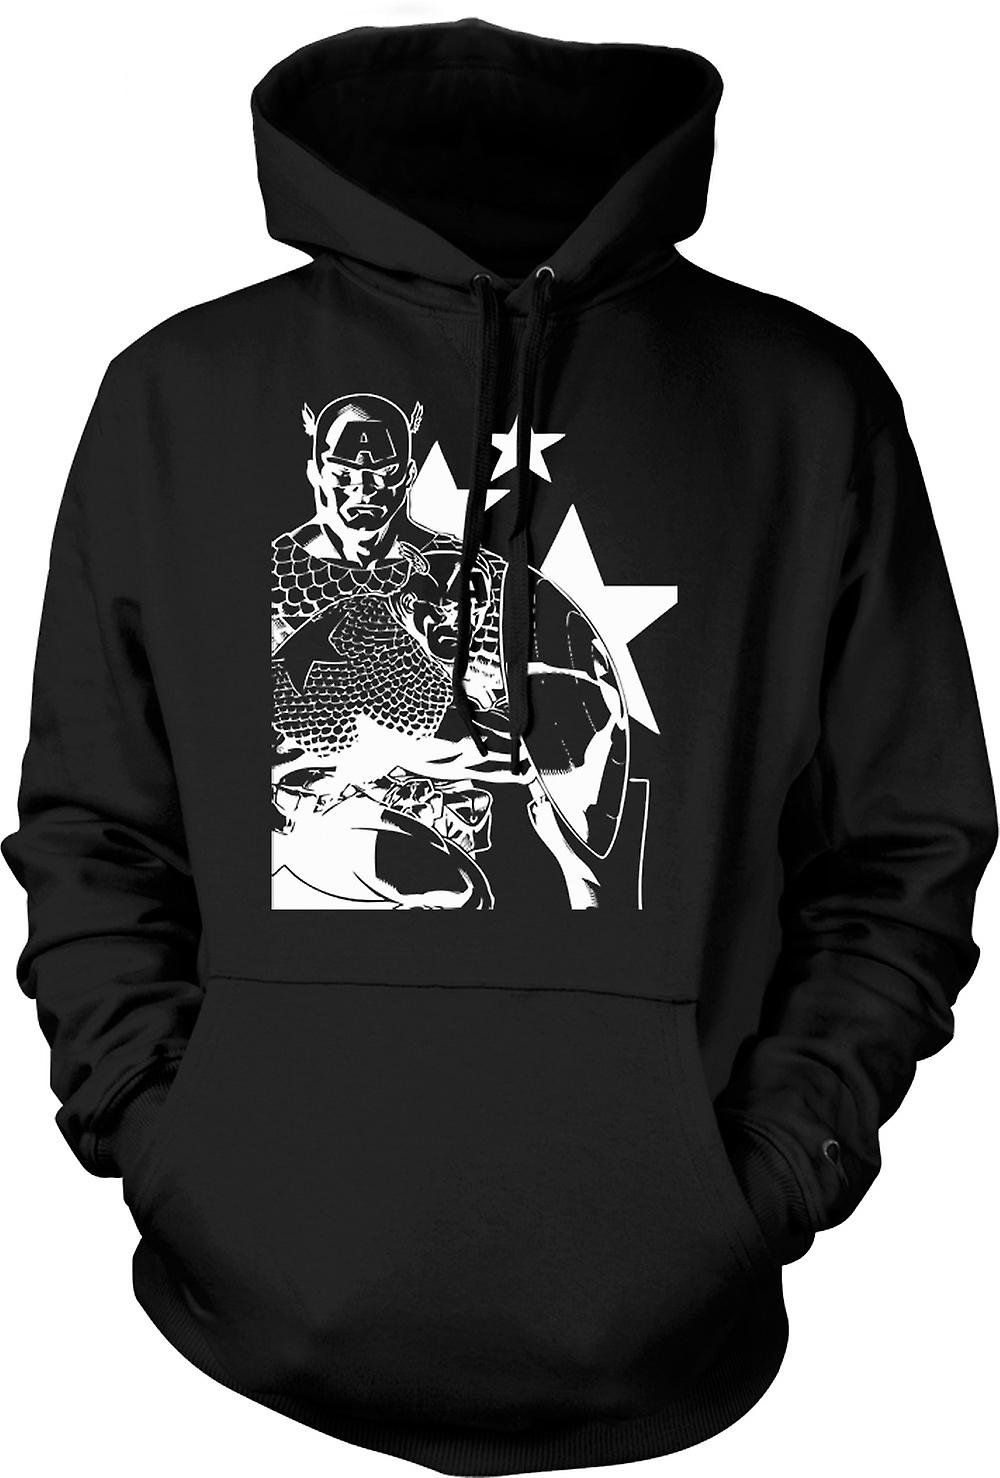 Mens Hoodie - Captain America avec écusson - Superhero